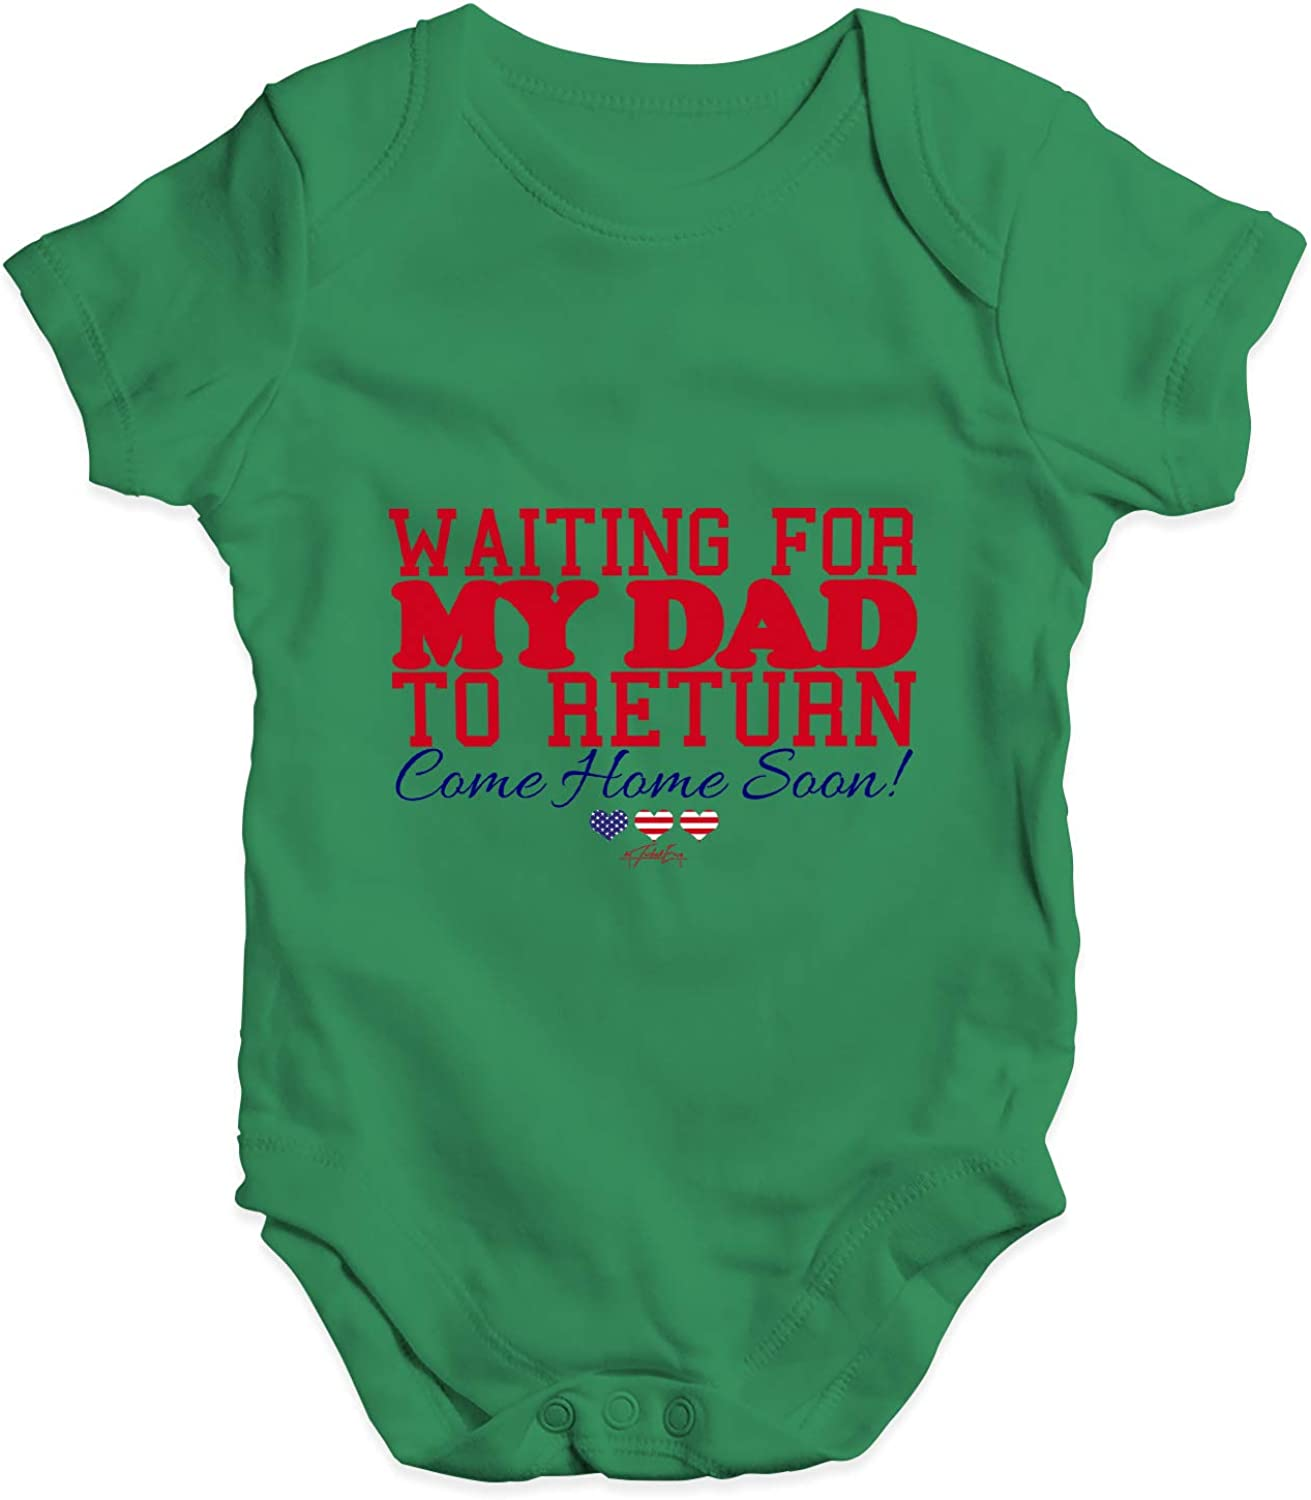 TWISTED ENVY Waiting for My Dad to Return Baby Unisex Funny Baby Grow Bodysuit